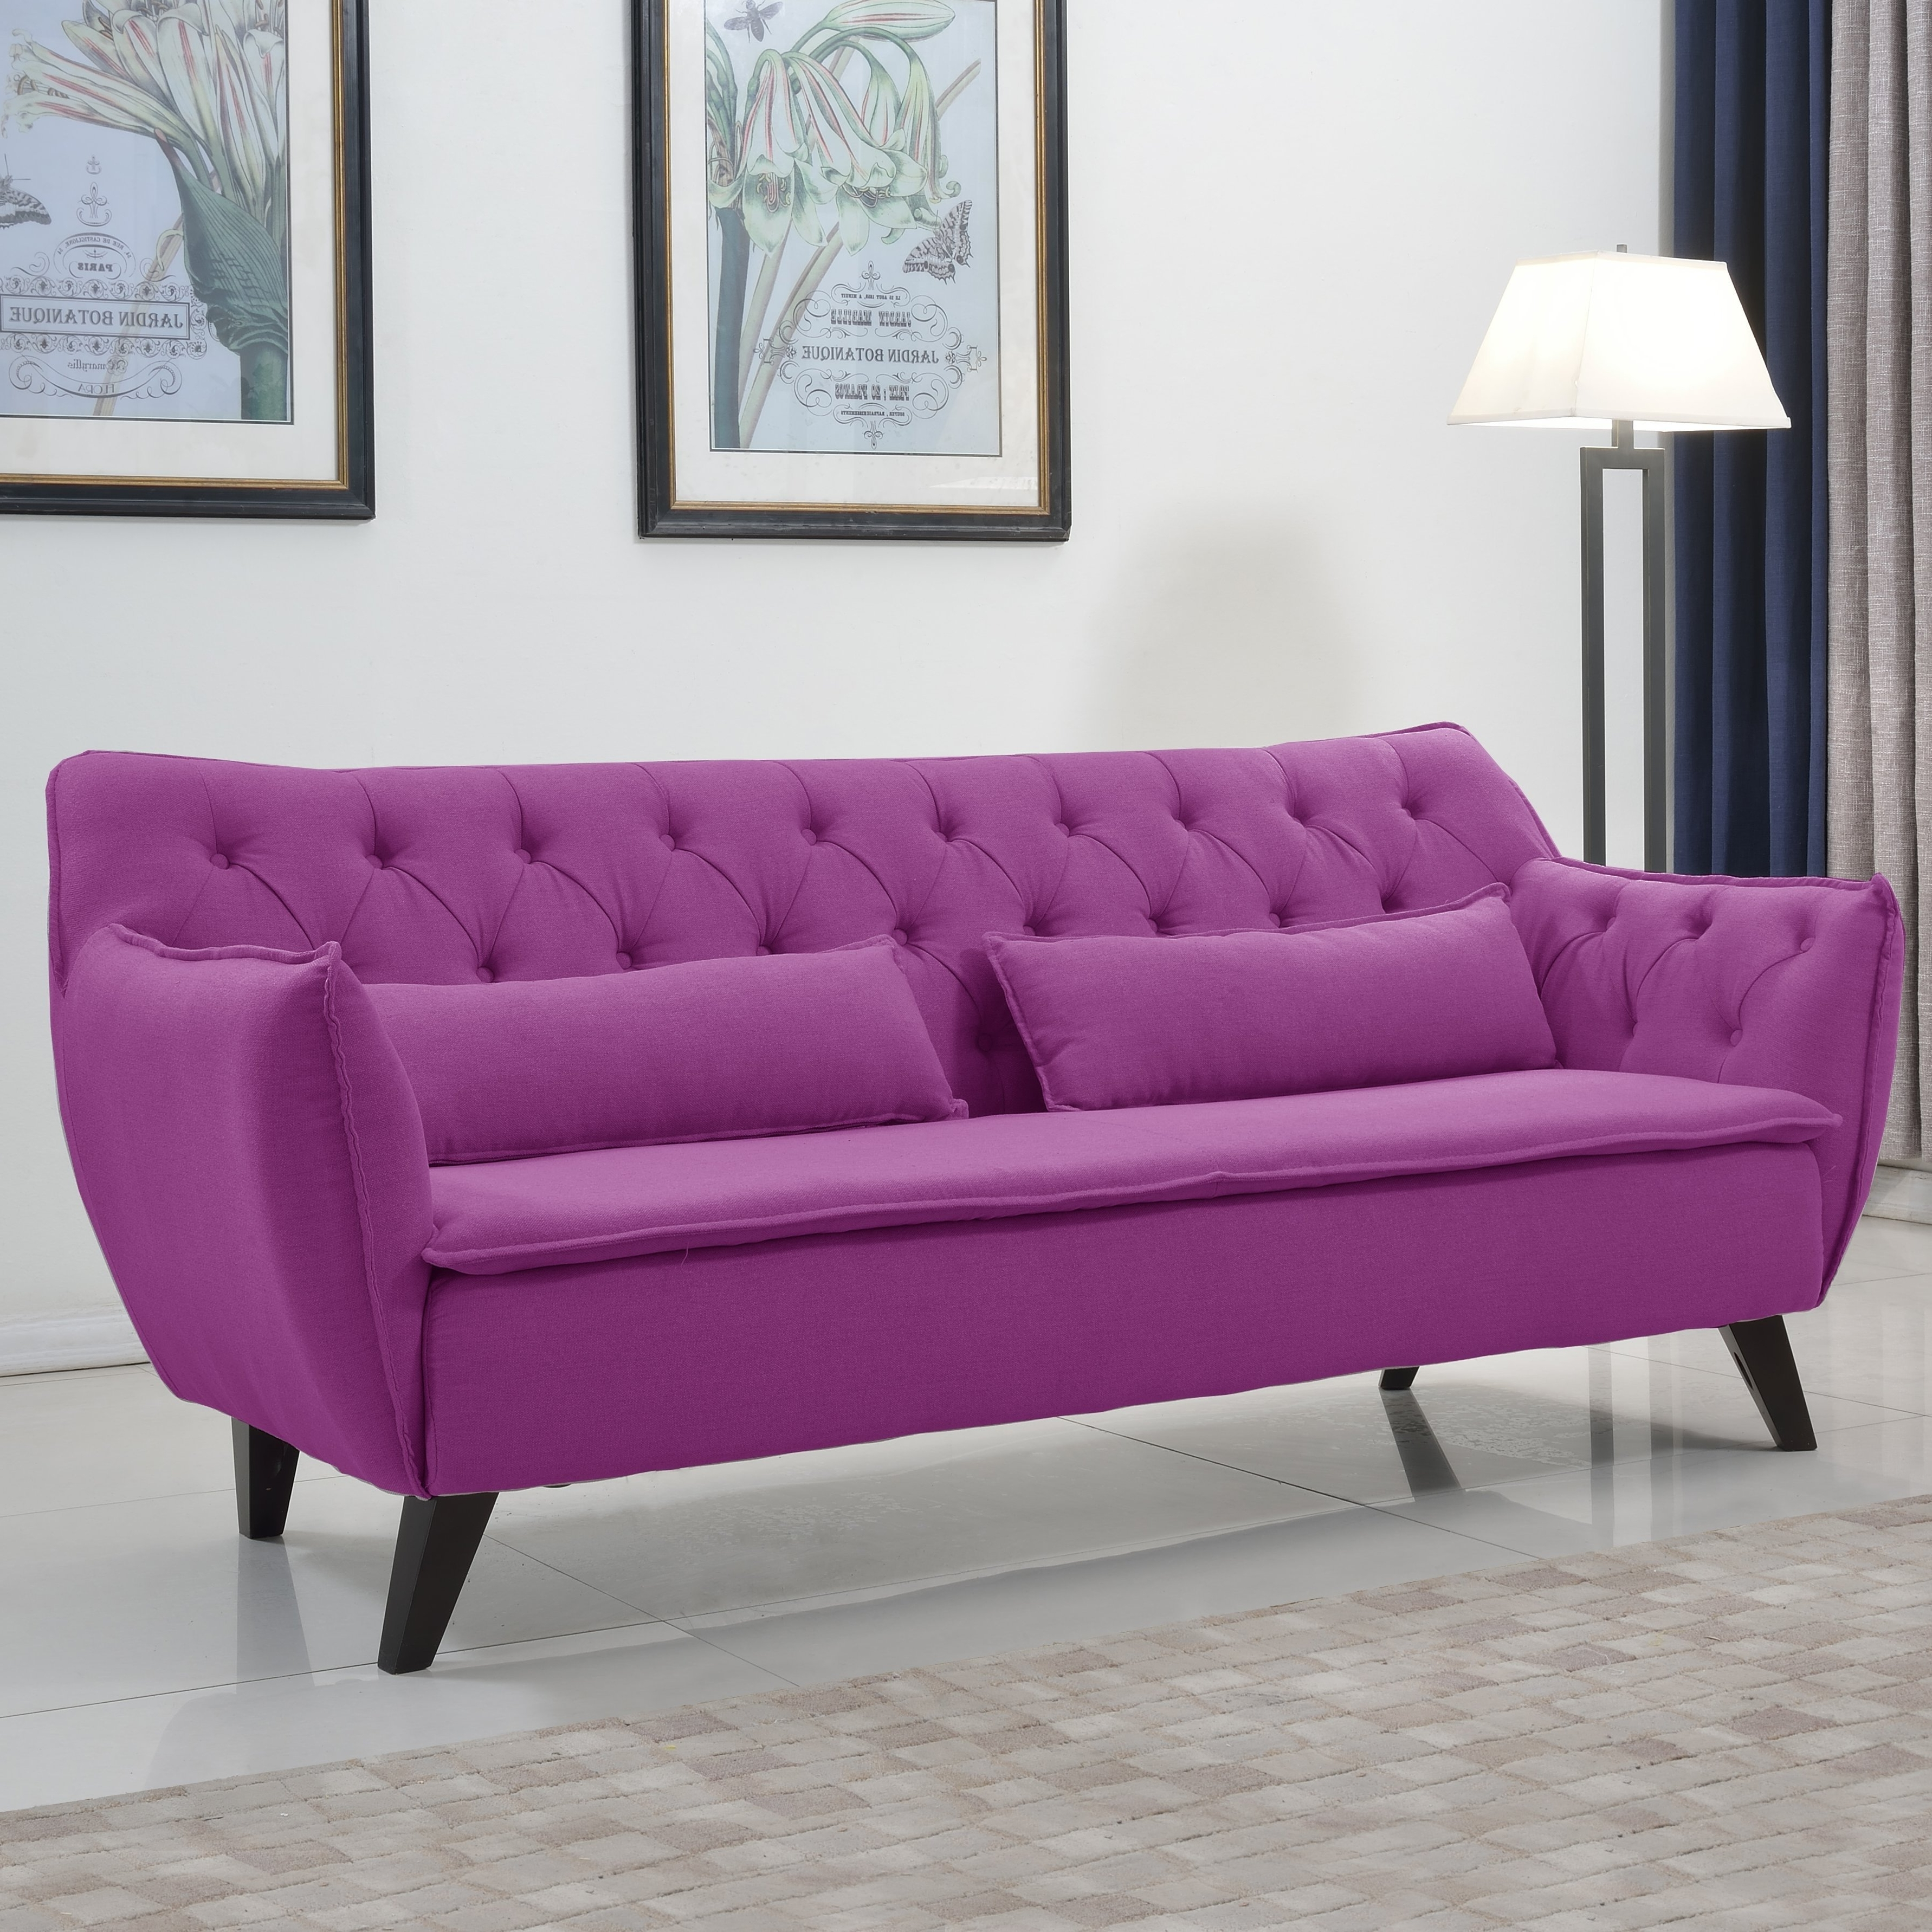 Antique Mid Century Modern Sofa — The Kienandsweet Furnitures Inside Best And Newest Fancy Sofas (View 6 of 15)